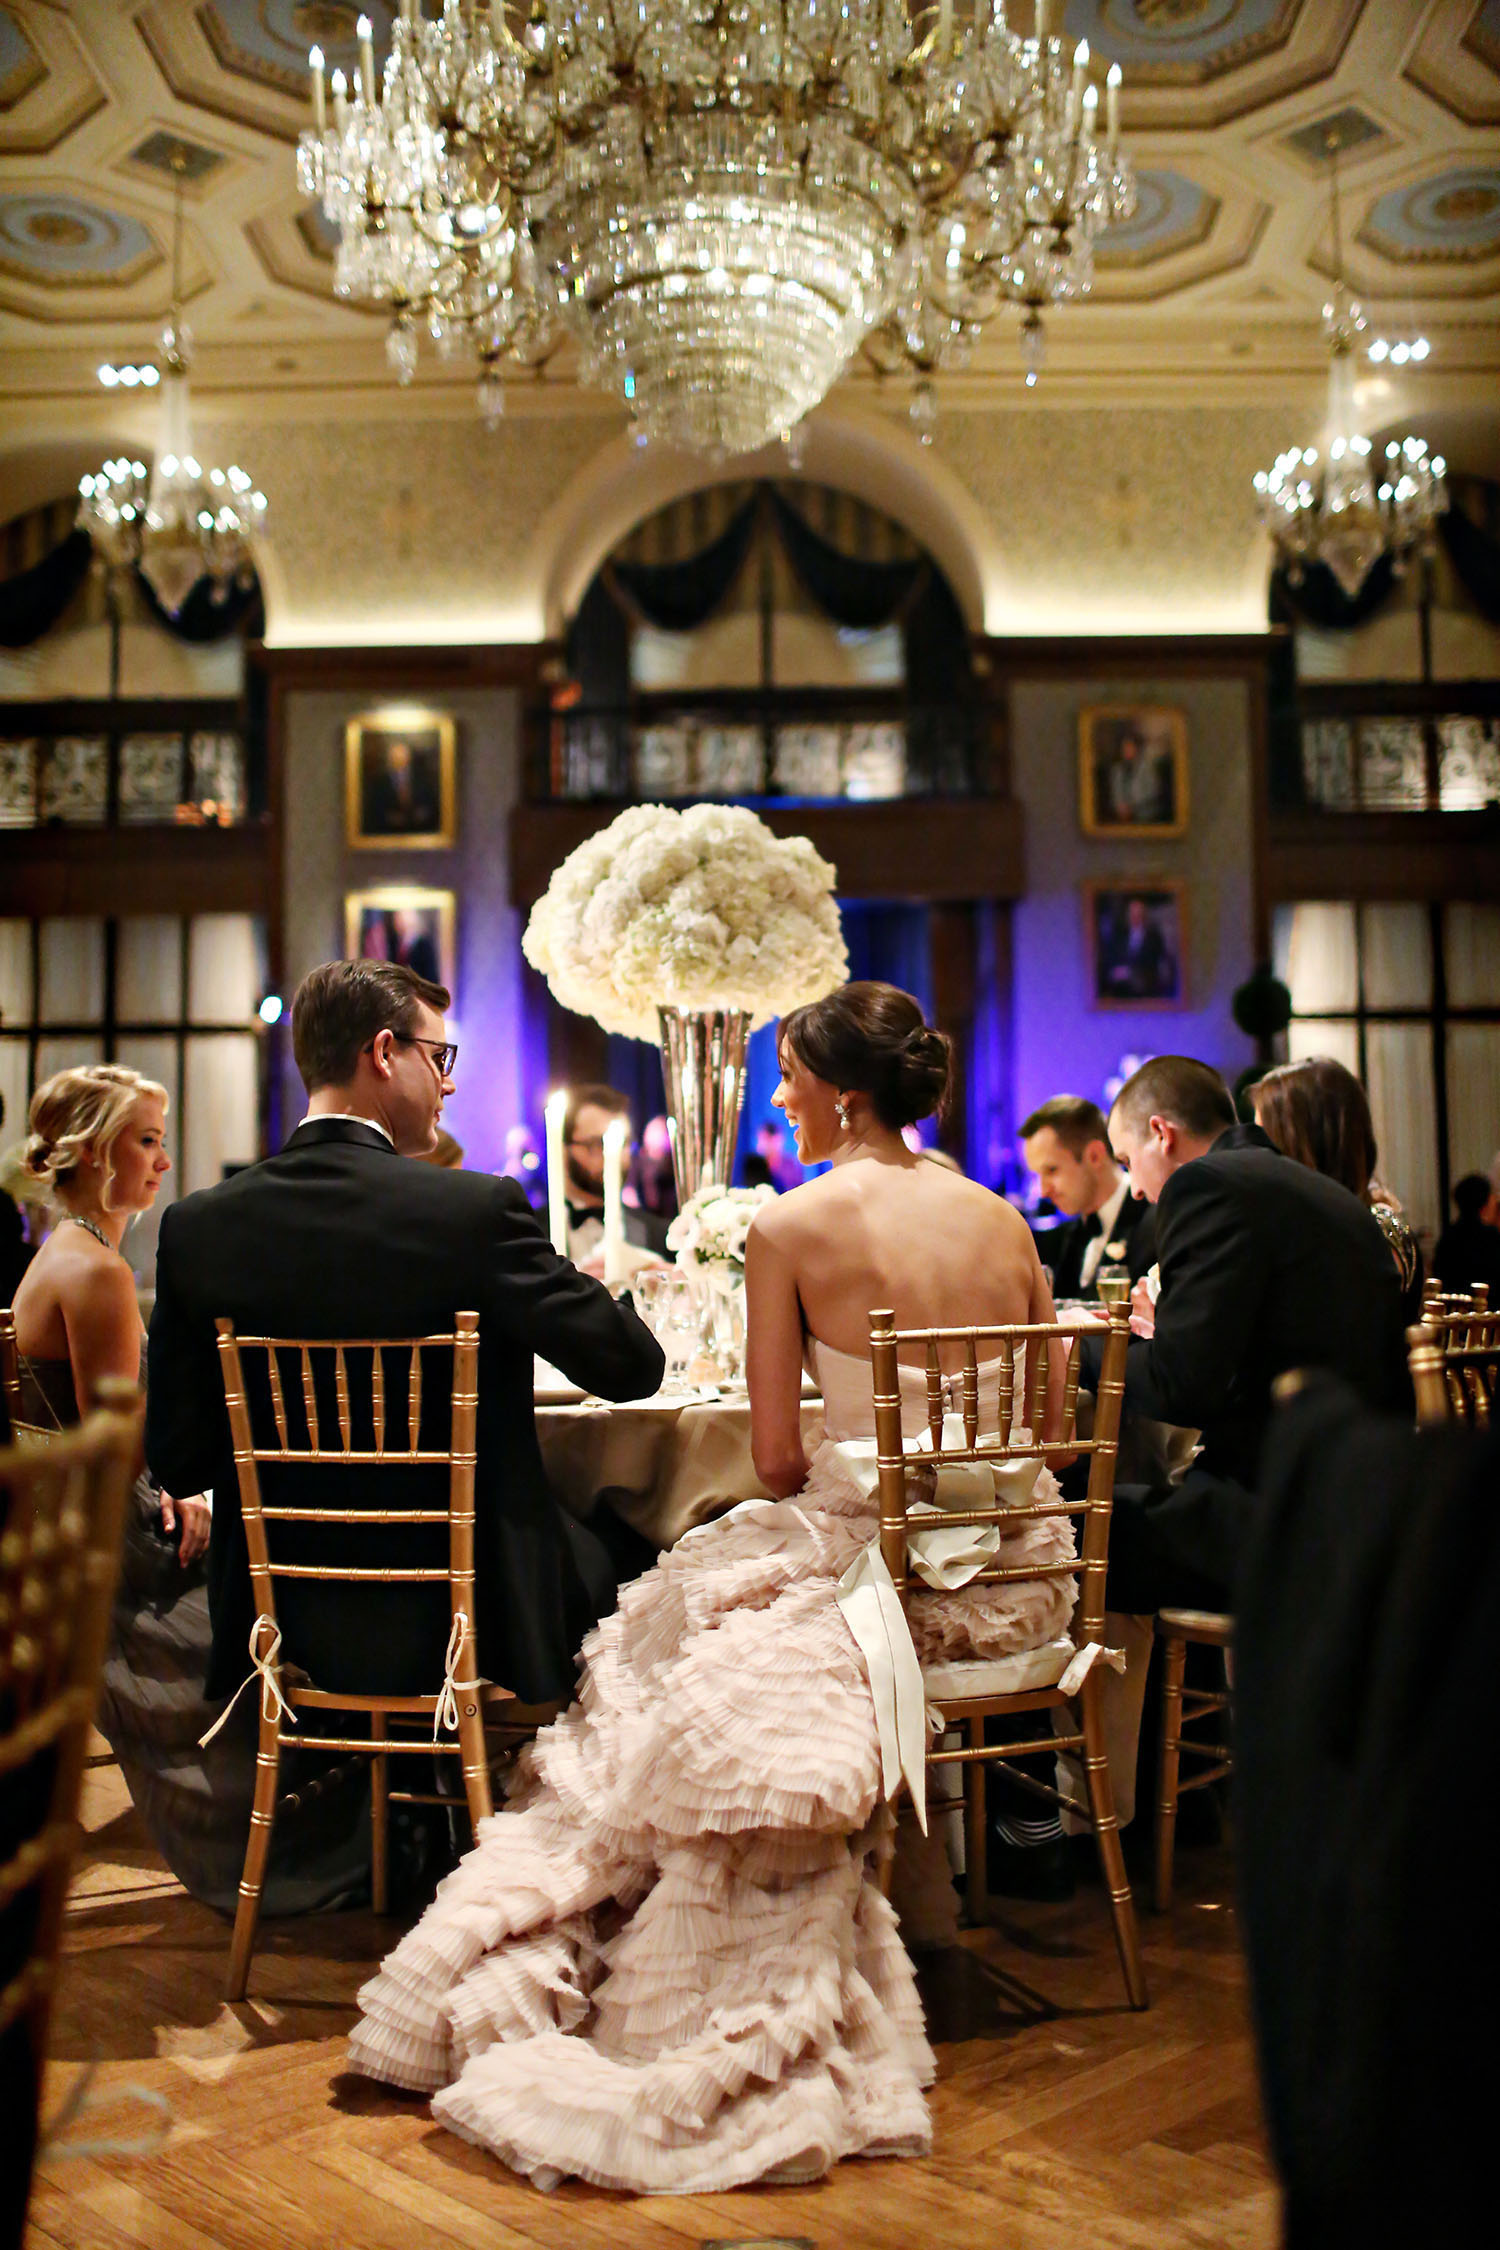 Alison Conklin Photography   |  Wedding Reception  |  The Union League, Philadelphia, PA